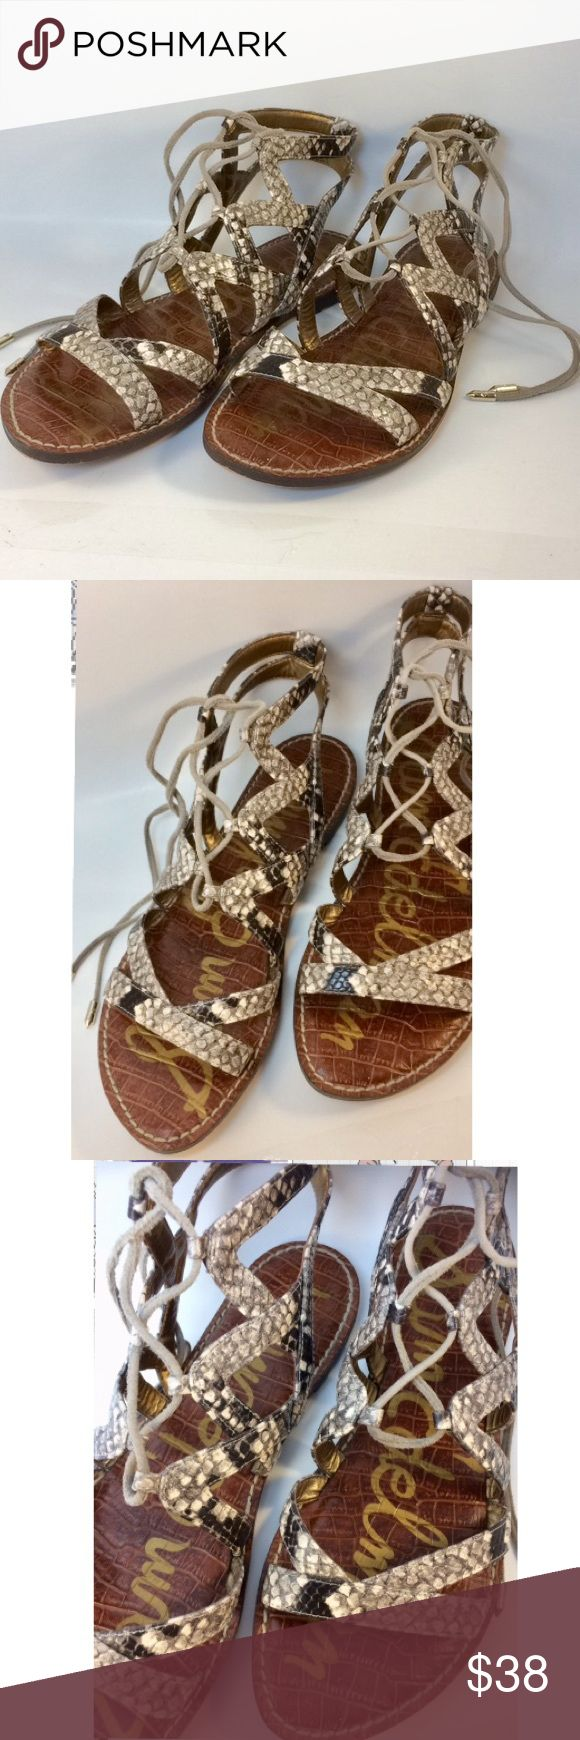 ♨️NEW ITEM♨️ Sam Edelman Leather Gladiator Sandals Sam Edelman Women's Gemma Sandal - Roccia Baja Snake Leather Gladiator Sandals • Heel measures approximately 0.5 inches • Perfect your chic ensemble in these modern Gemma gladiator sandals • Leather upper • Lace up design • Open toed, caged silhouette • Synthetic lining. Lightly padded footbed. Synthetic sole. Imported. Sam Edelman Shoes Sandals